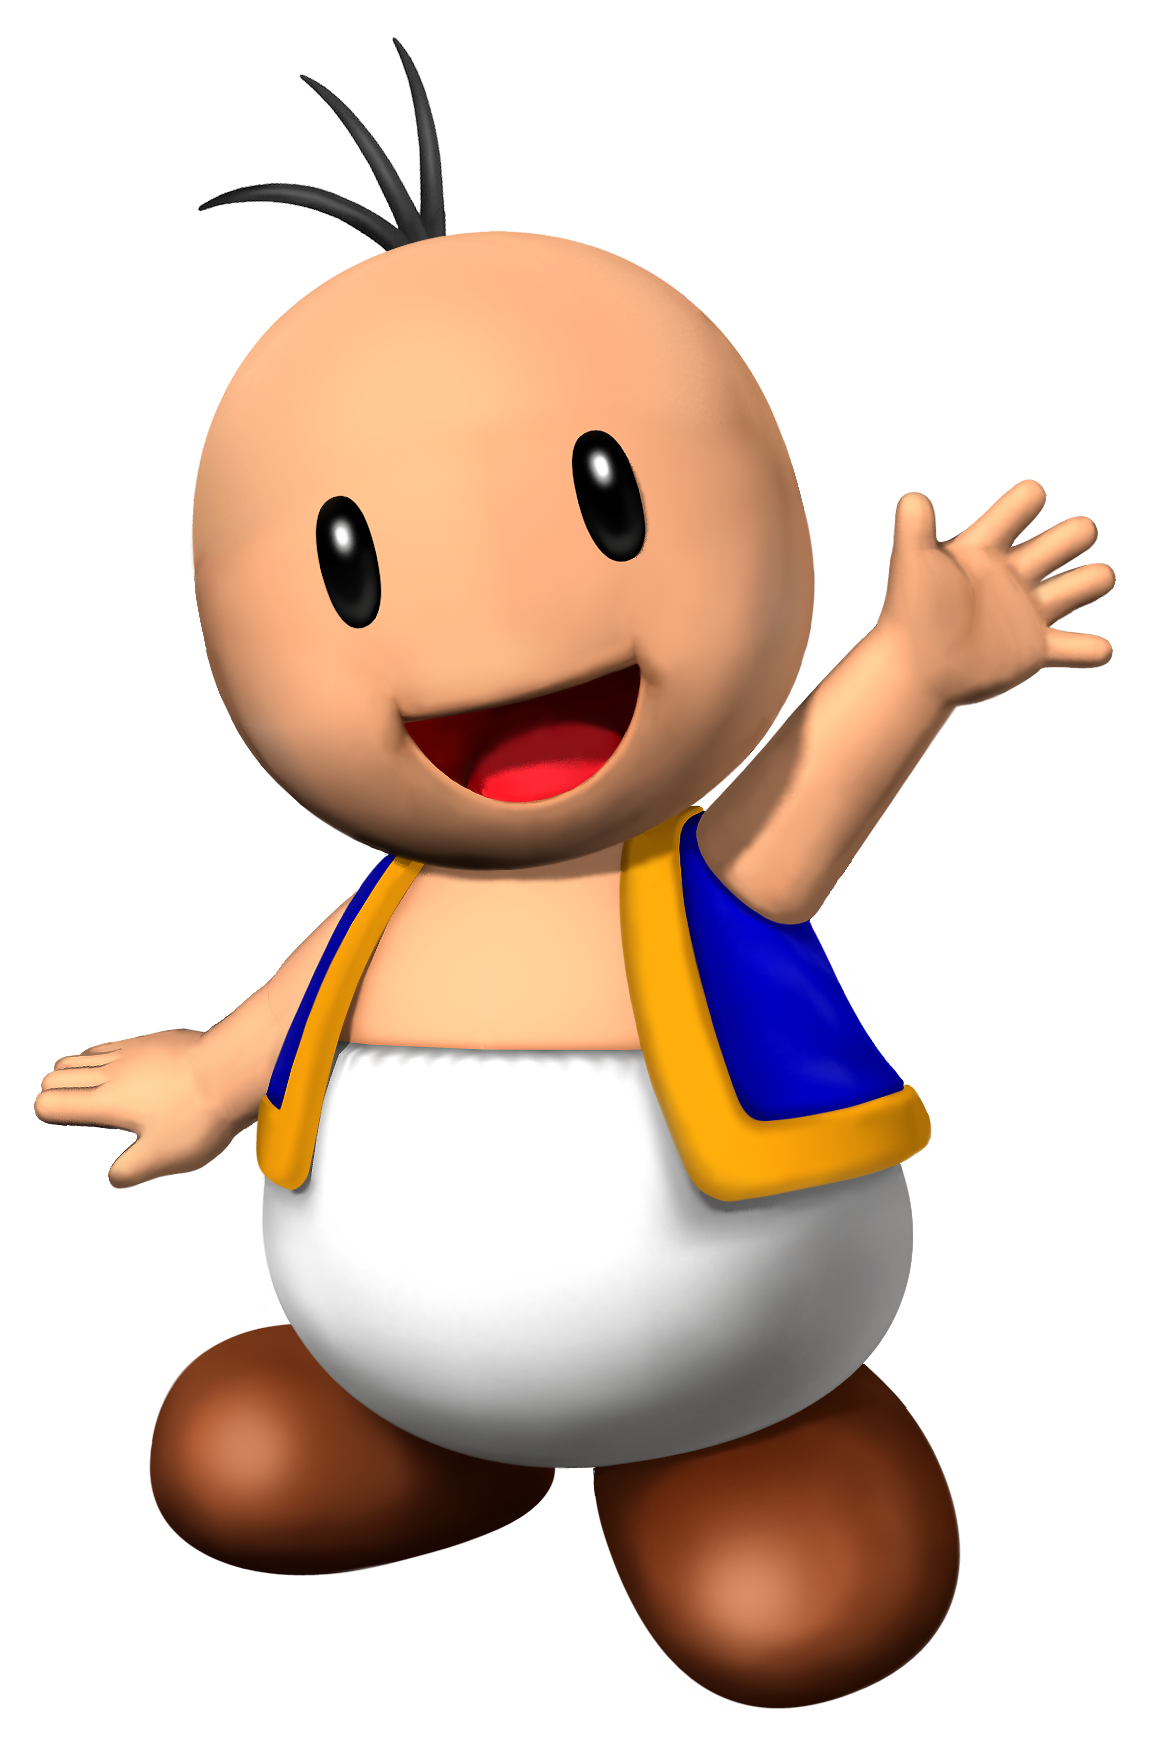 Bald Toad | Fantendo - Nintendo Fanon Wiki | FANDOM powered by Wikia